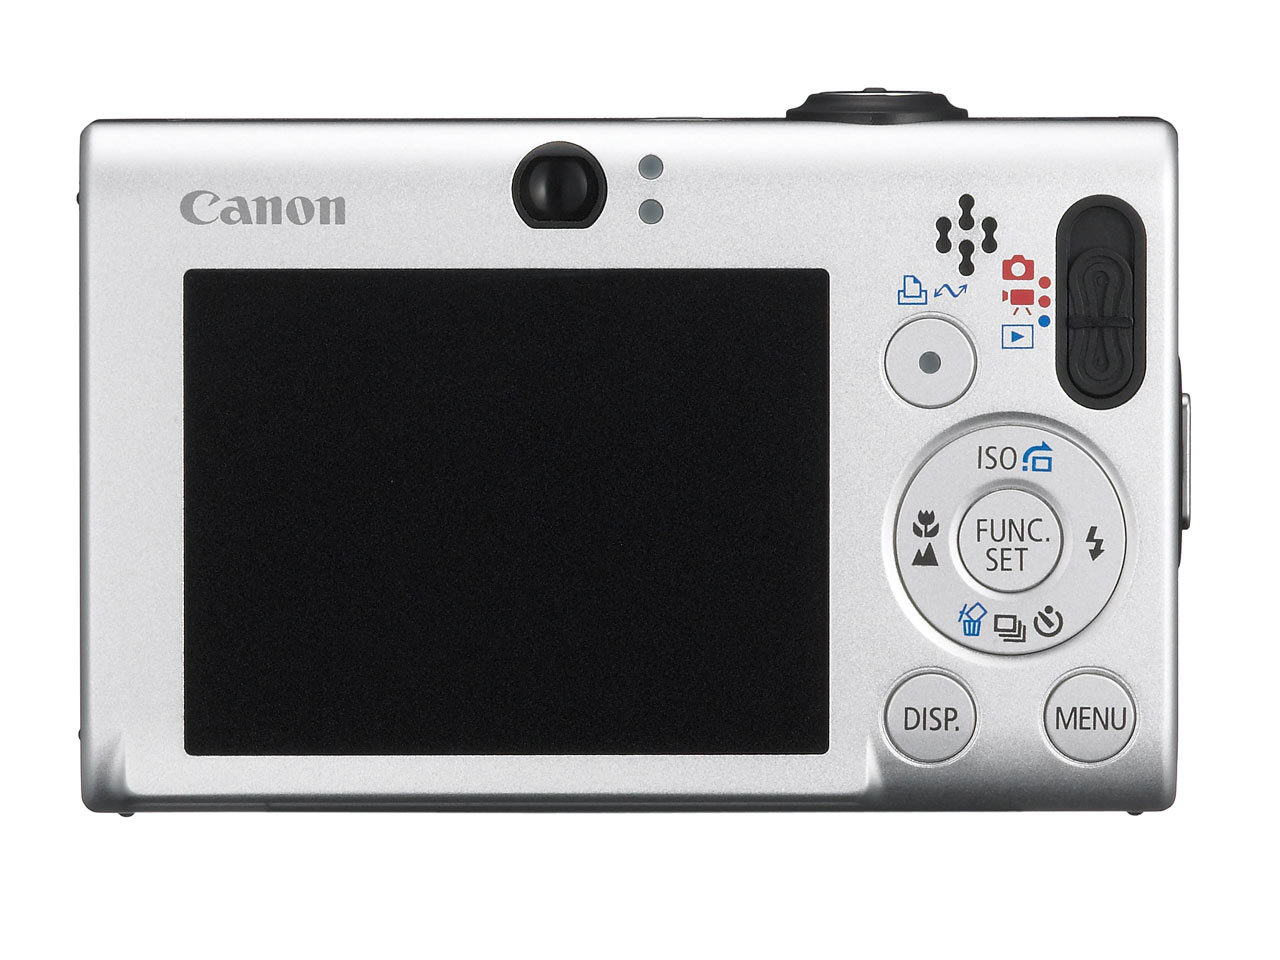 Canon Powershot SD1100 IS specifications